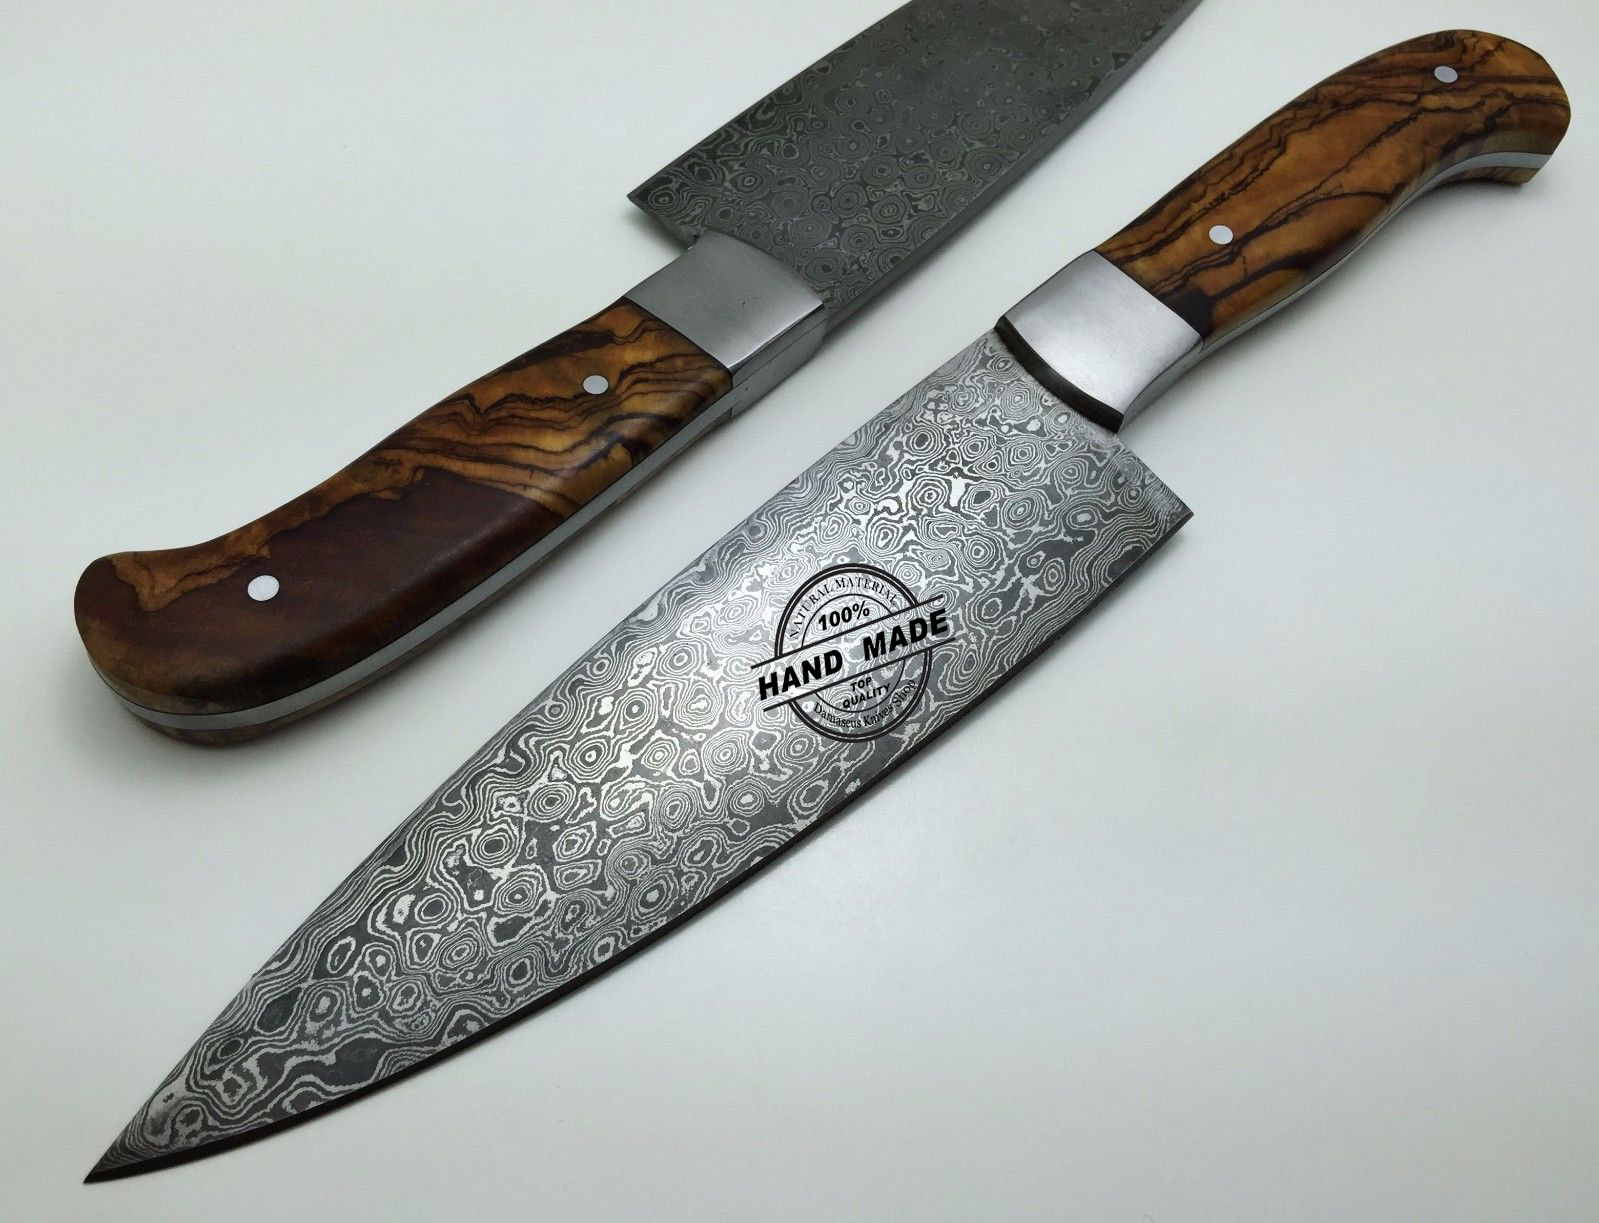 regular damascus kitchen knife custom handmade damascus steel4. Black Bedroom Furniture Sets. Home Design Ideas